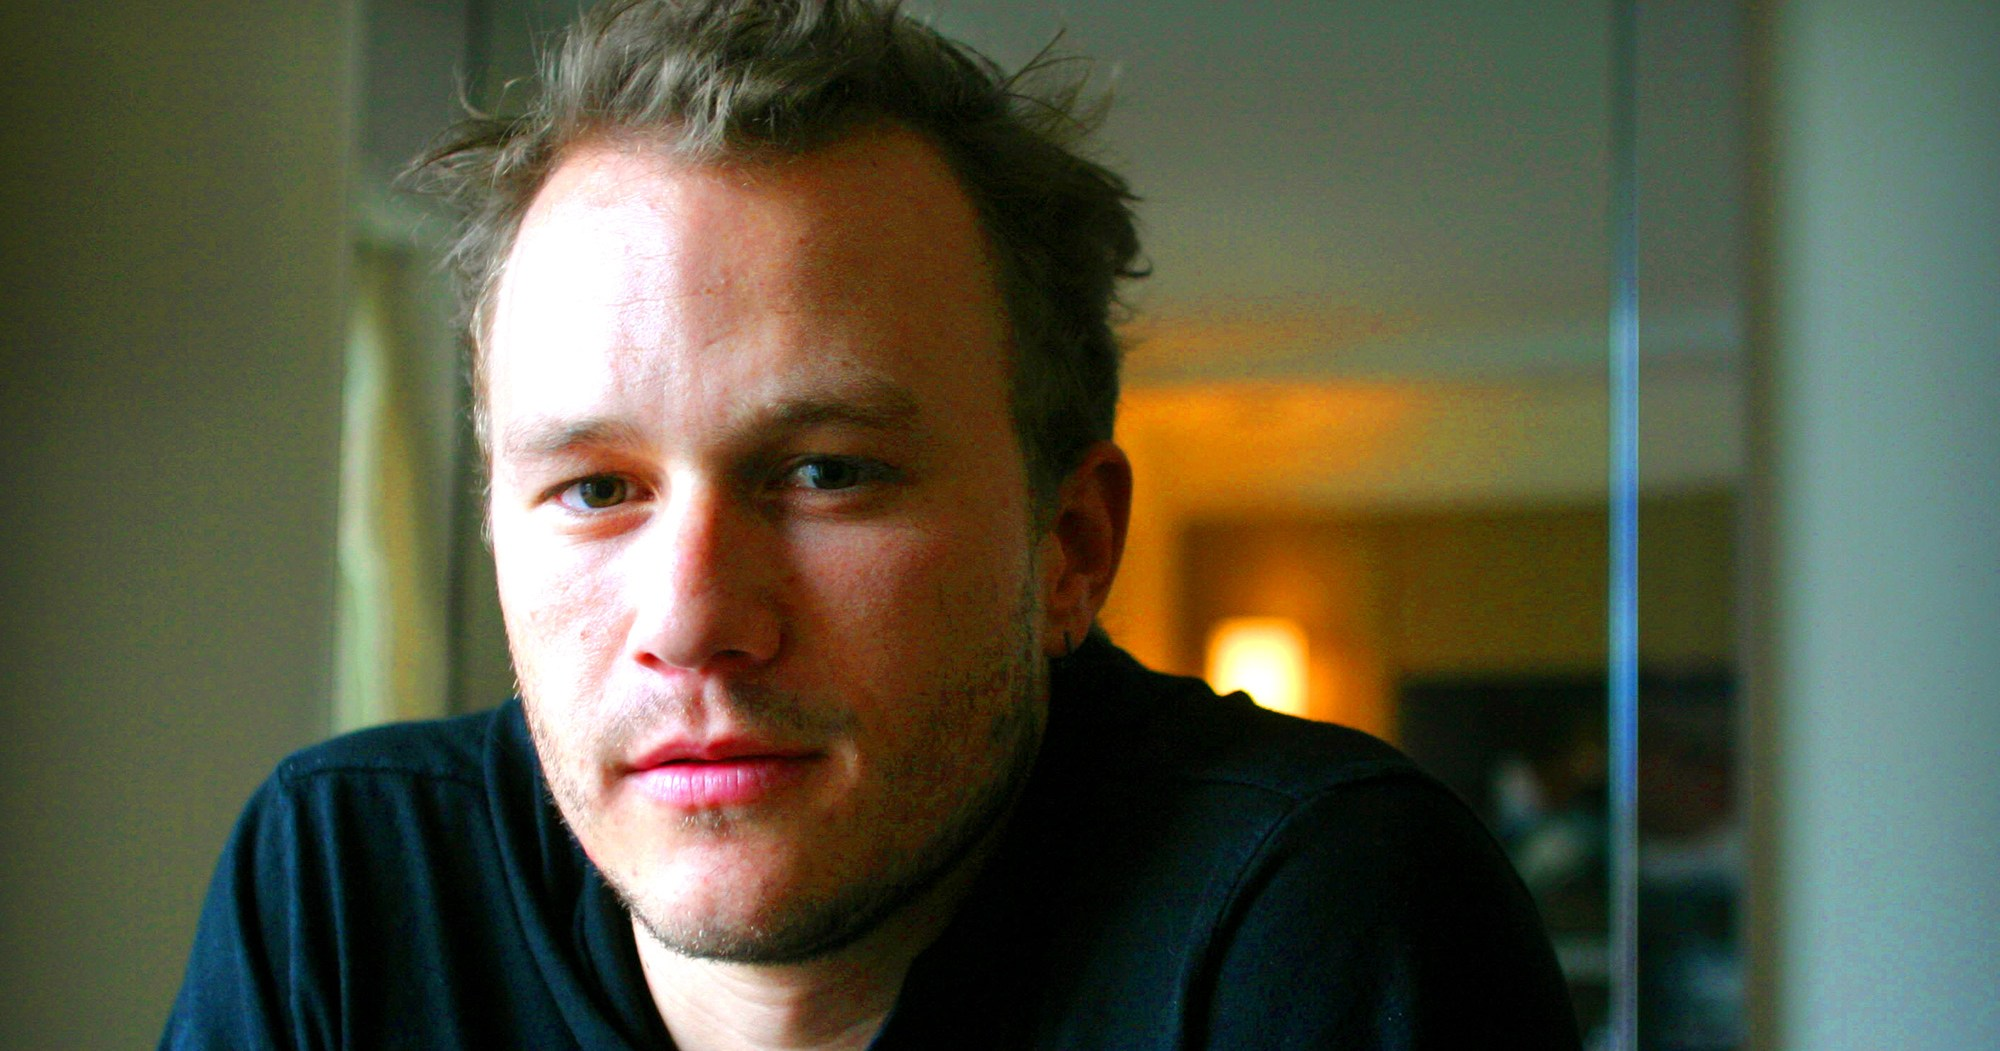 Remembering Heath Ledger: 10 Years After His Death